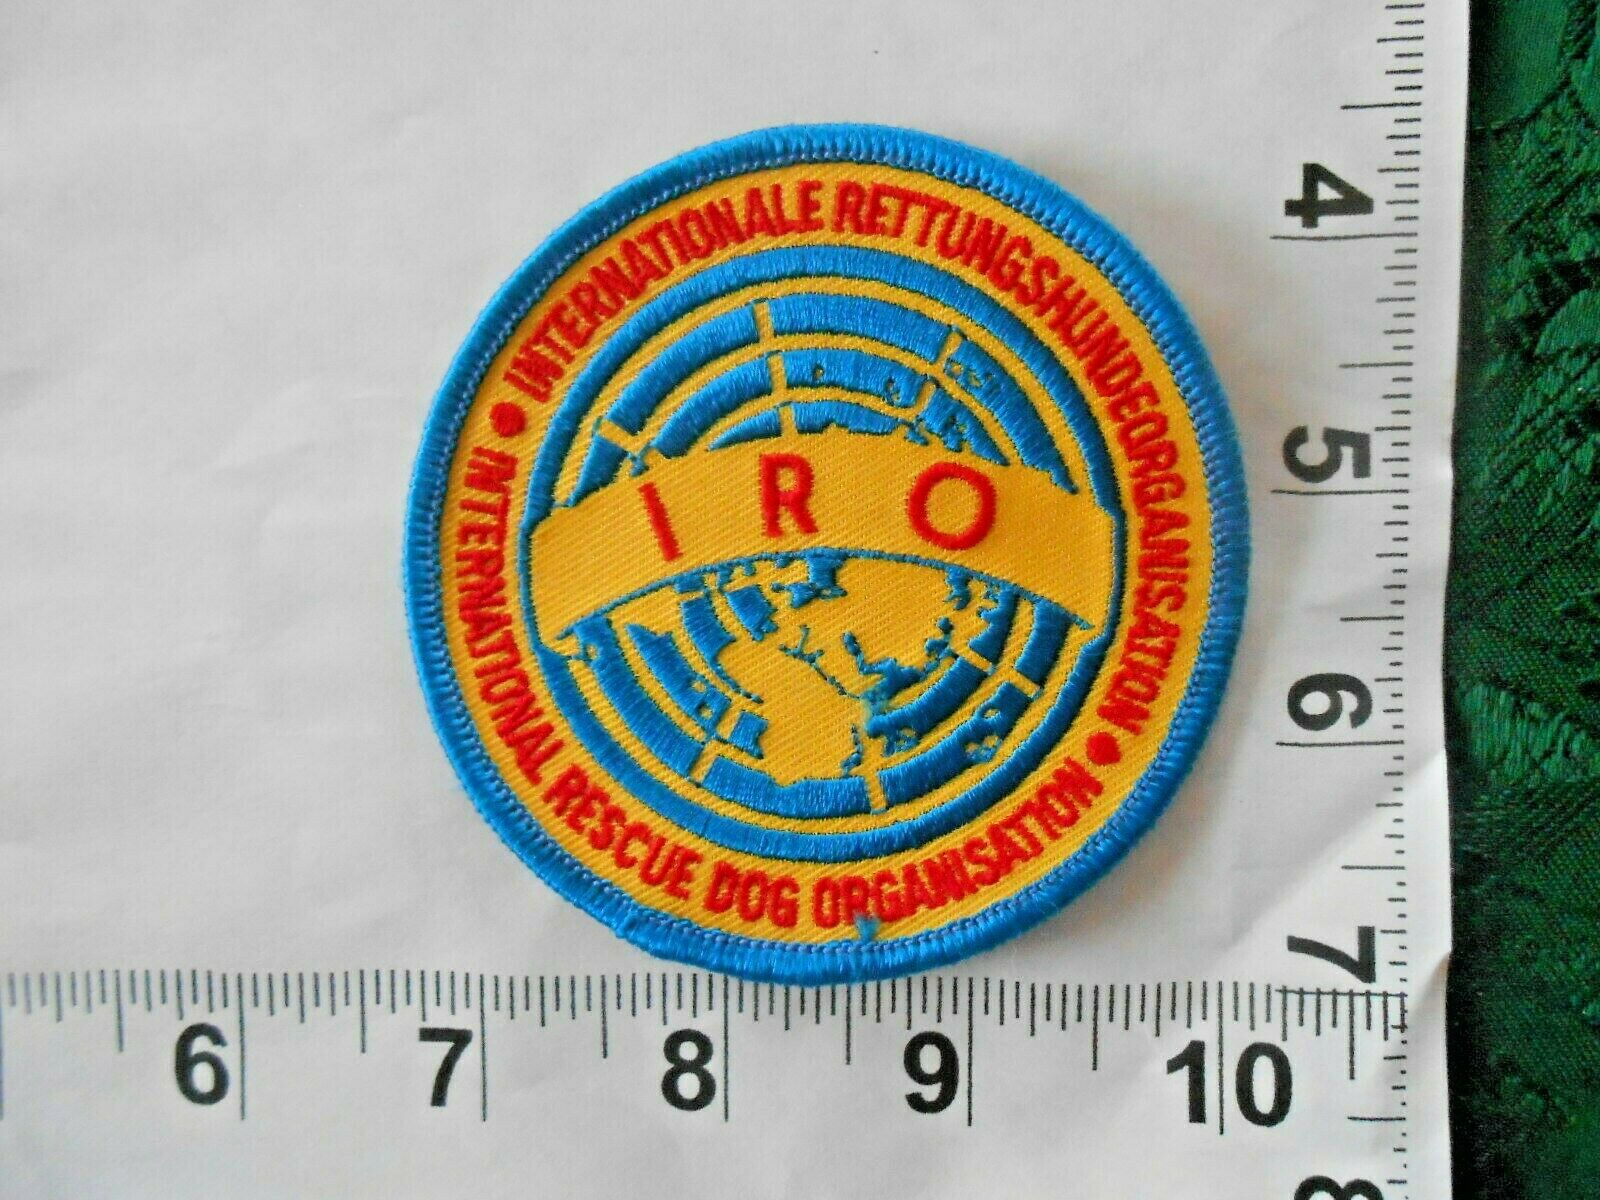 International Rescue Dog Organisation IRO Patch Sew On Patch With Free S h - $4.49